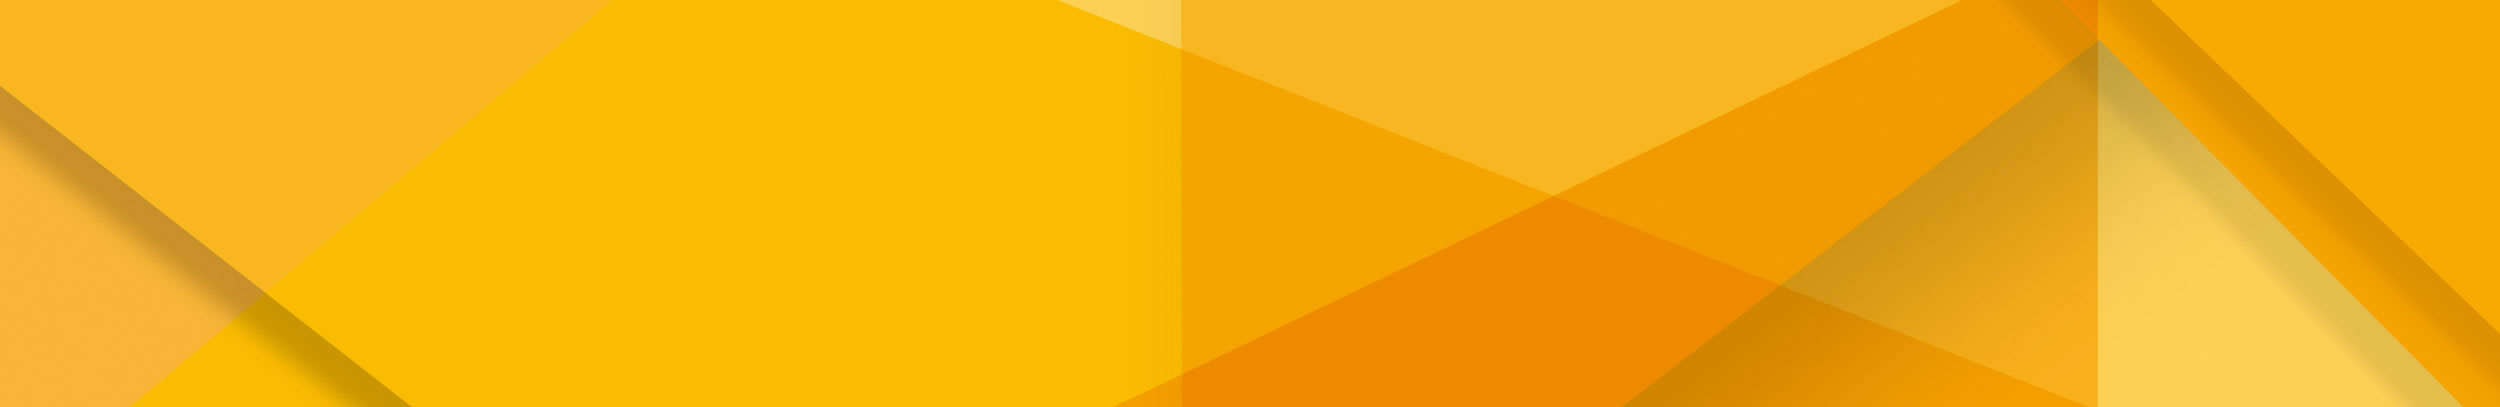 geometric background images in yellow